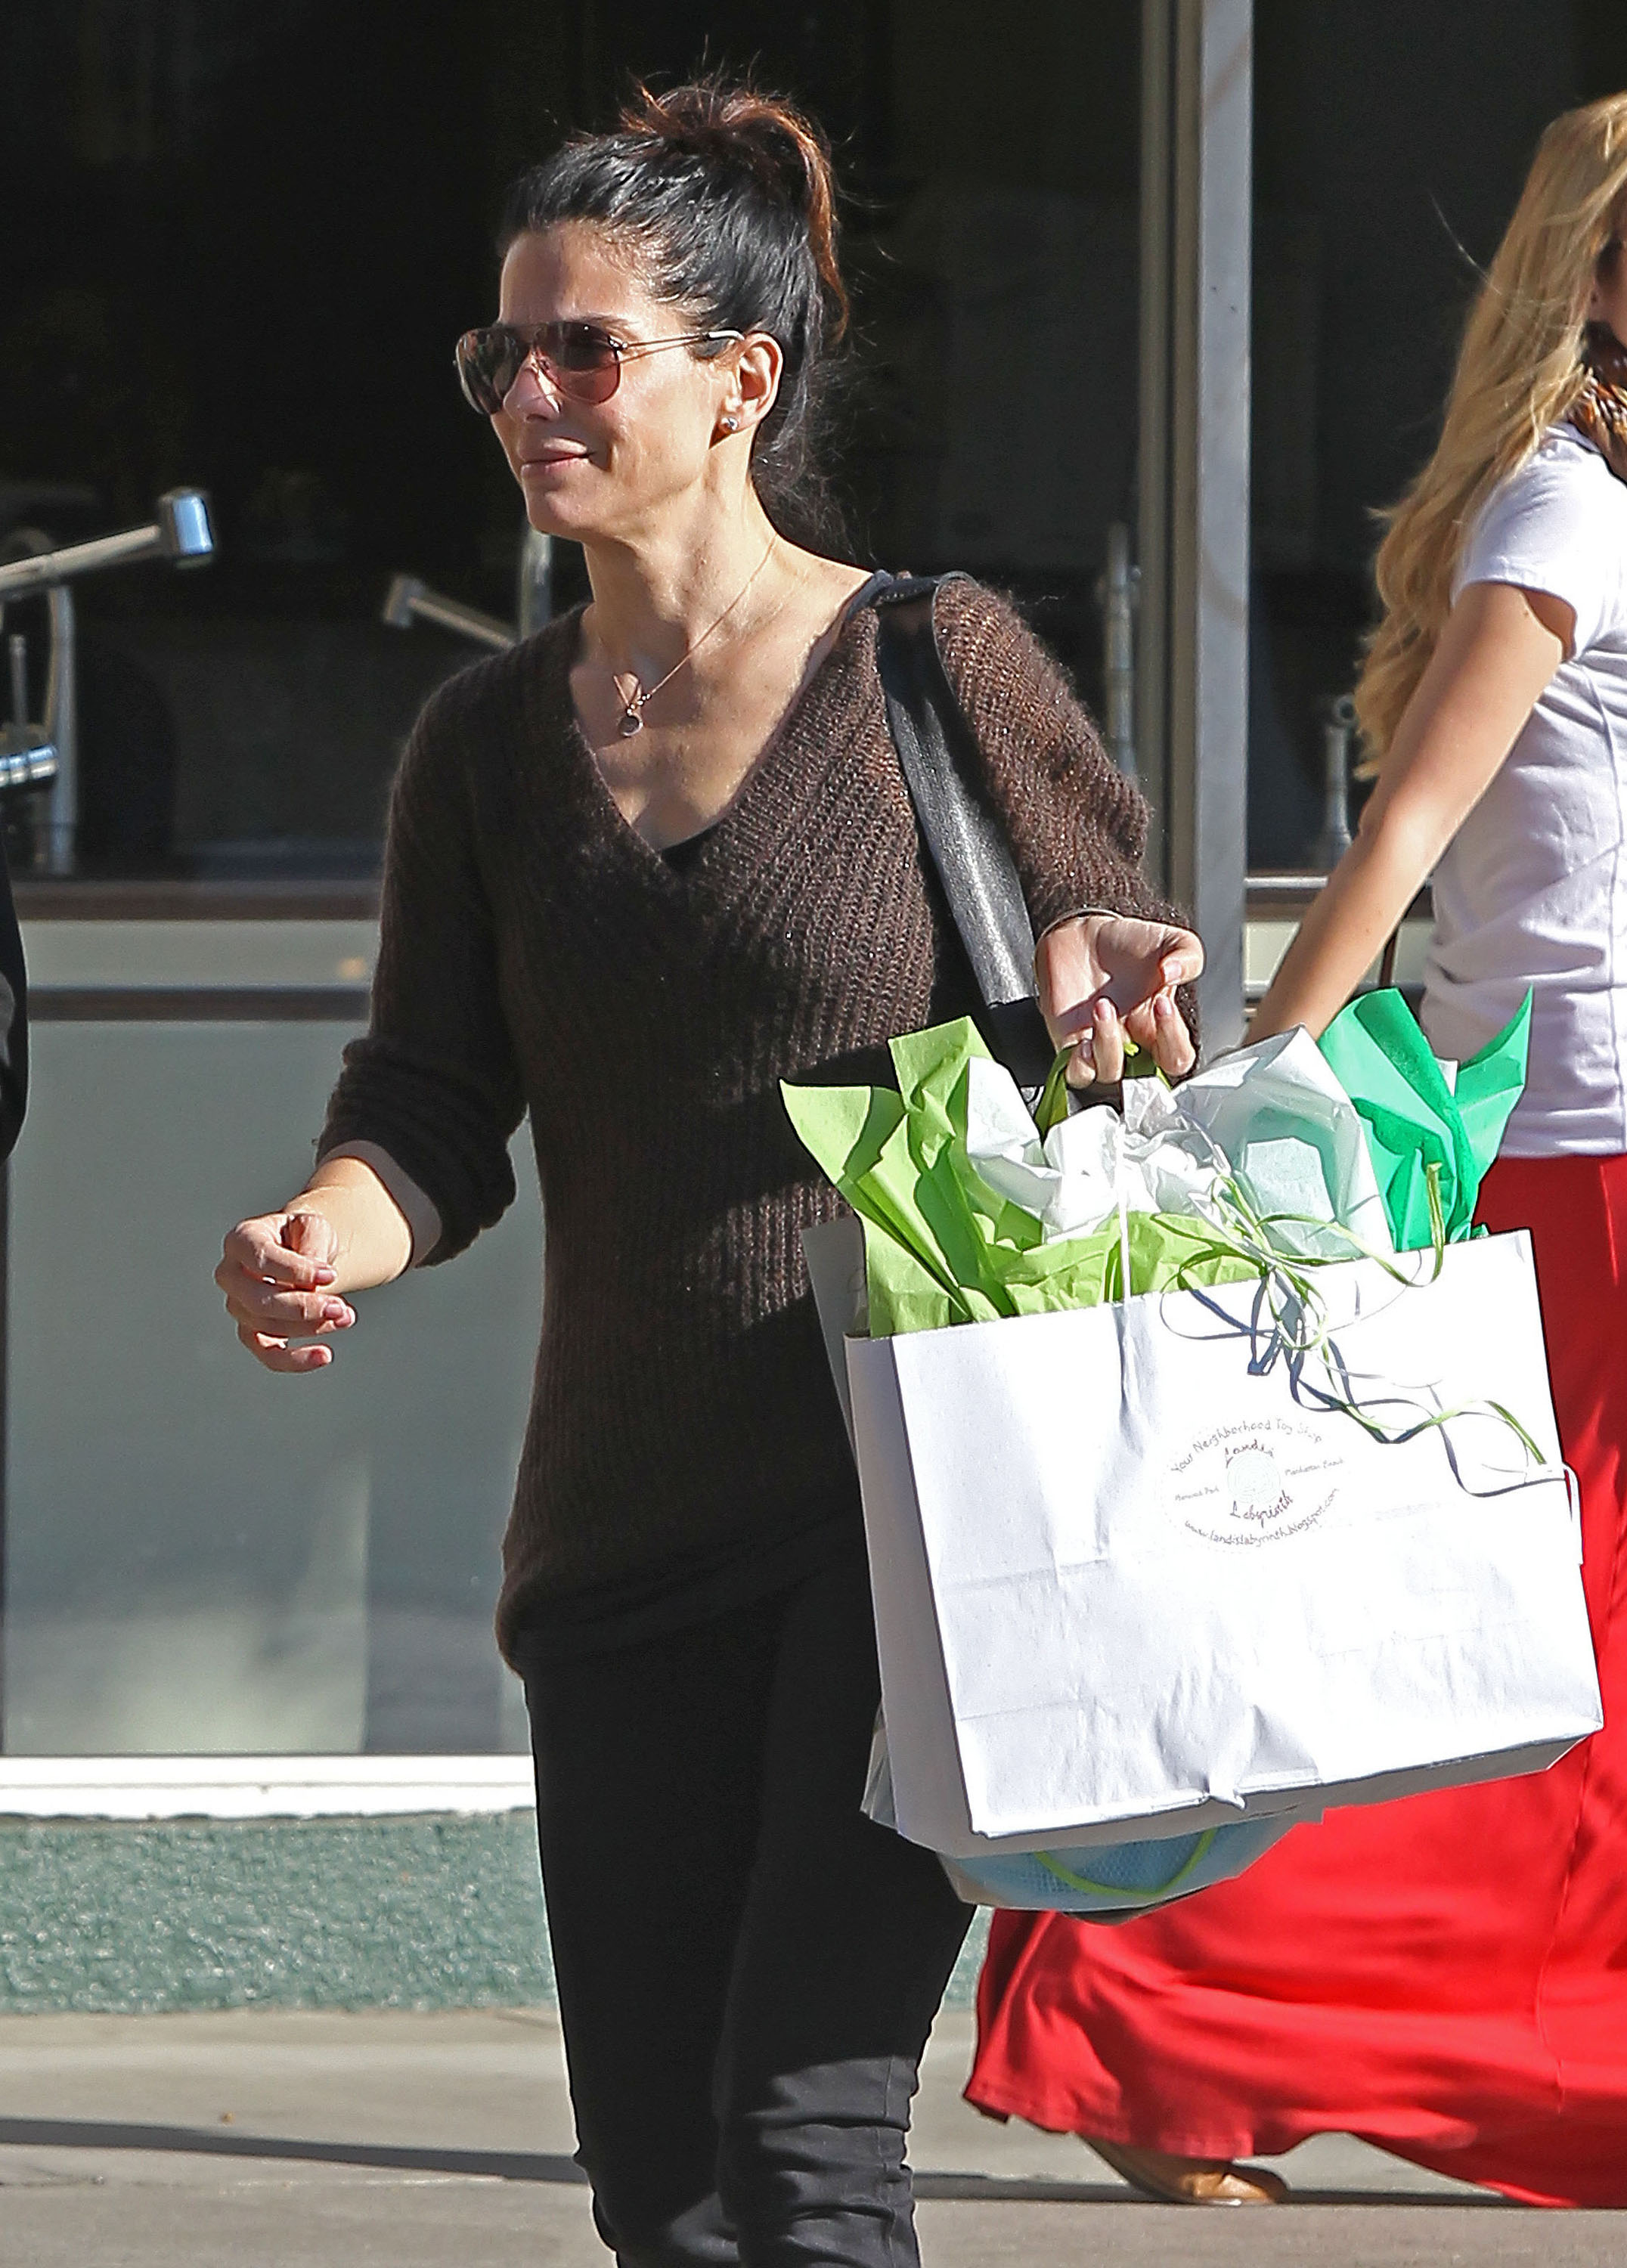 Sandra Bullock carried a gift out of a toy store.